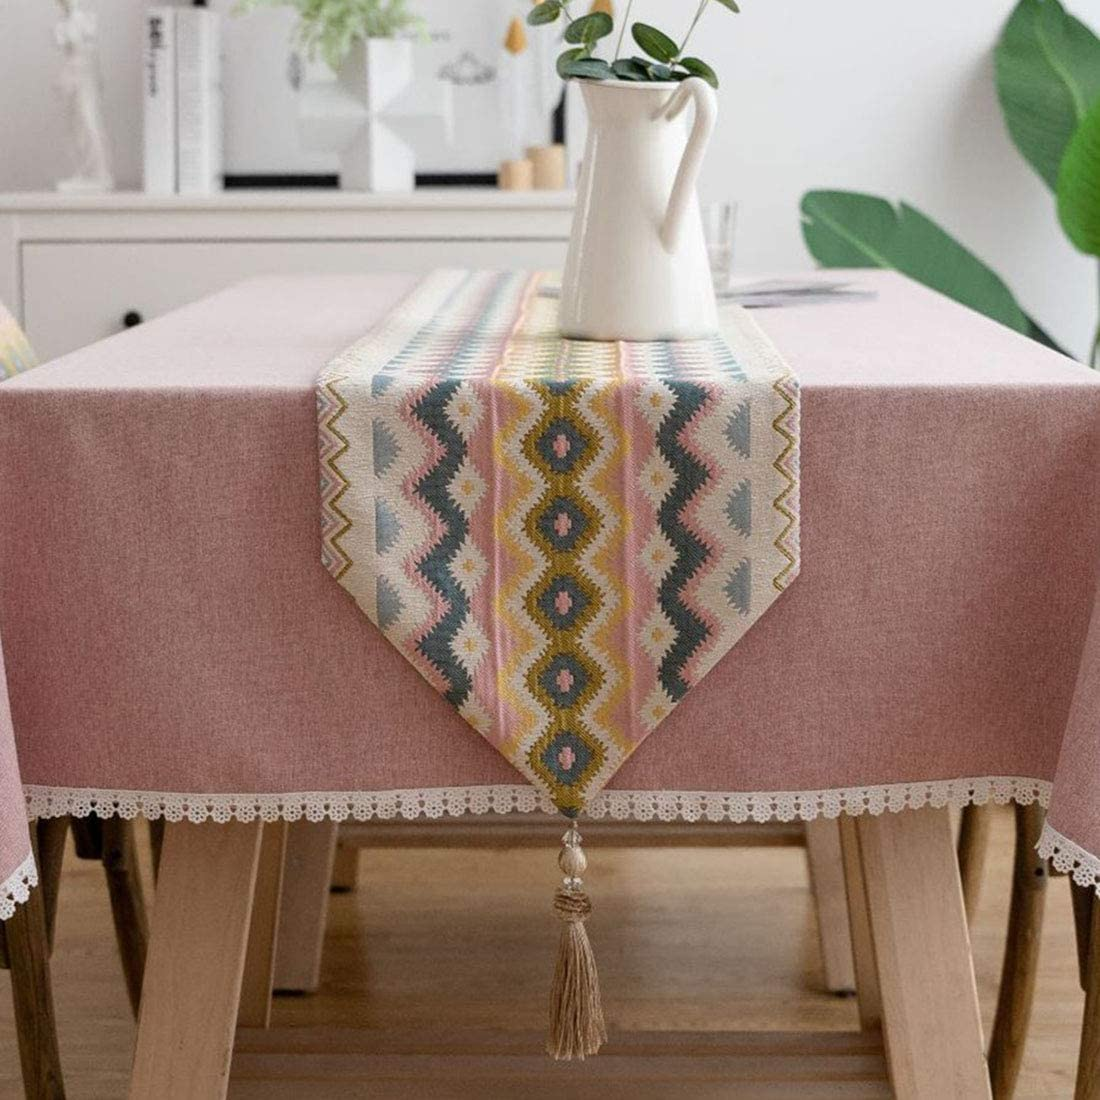 vctops Boho Colorful Wave Table Runners with Tassels Geometric Jacquard Country Style Table Runner Dresser Decoration (Wave B, 13 x 71 Inch)